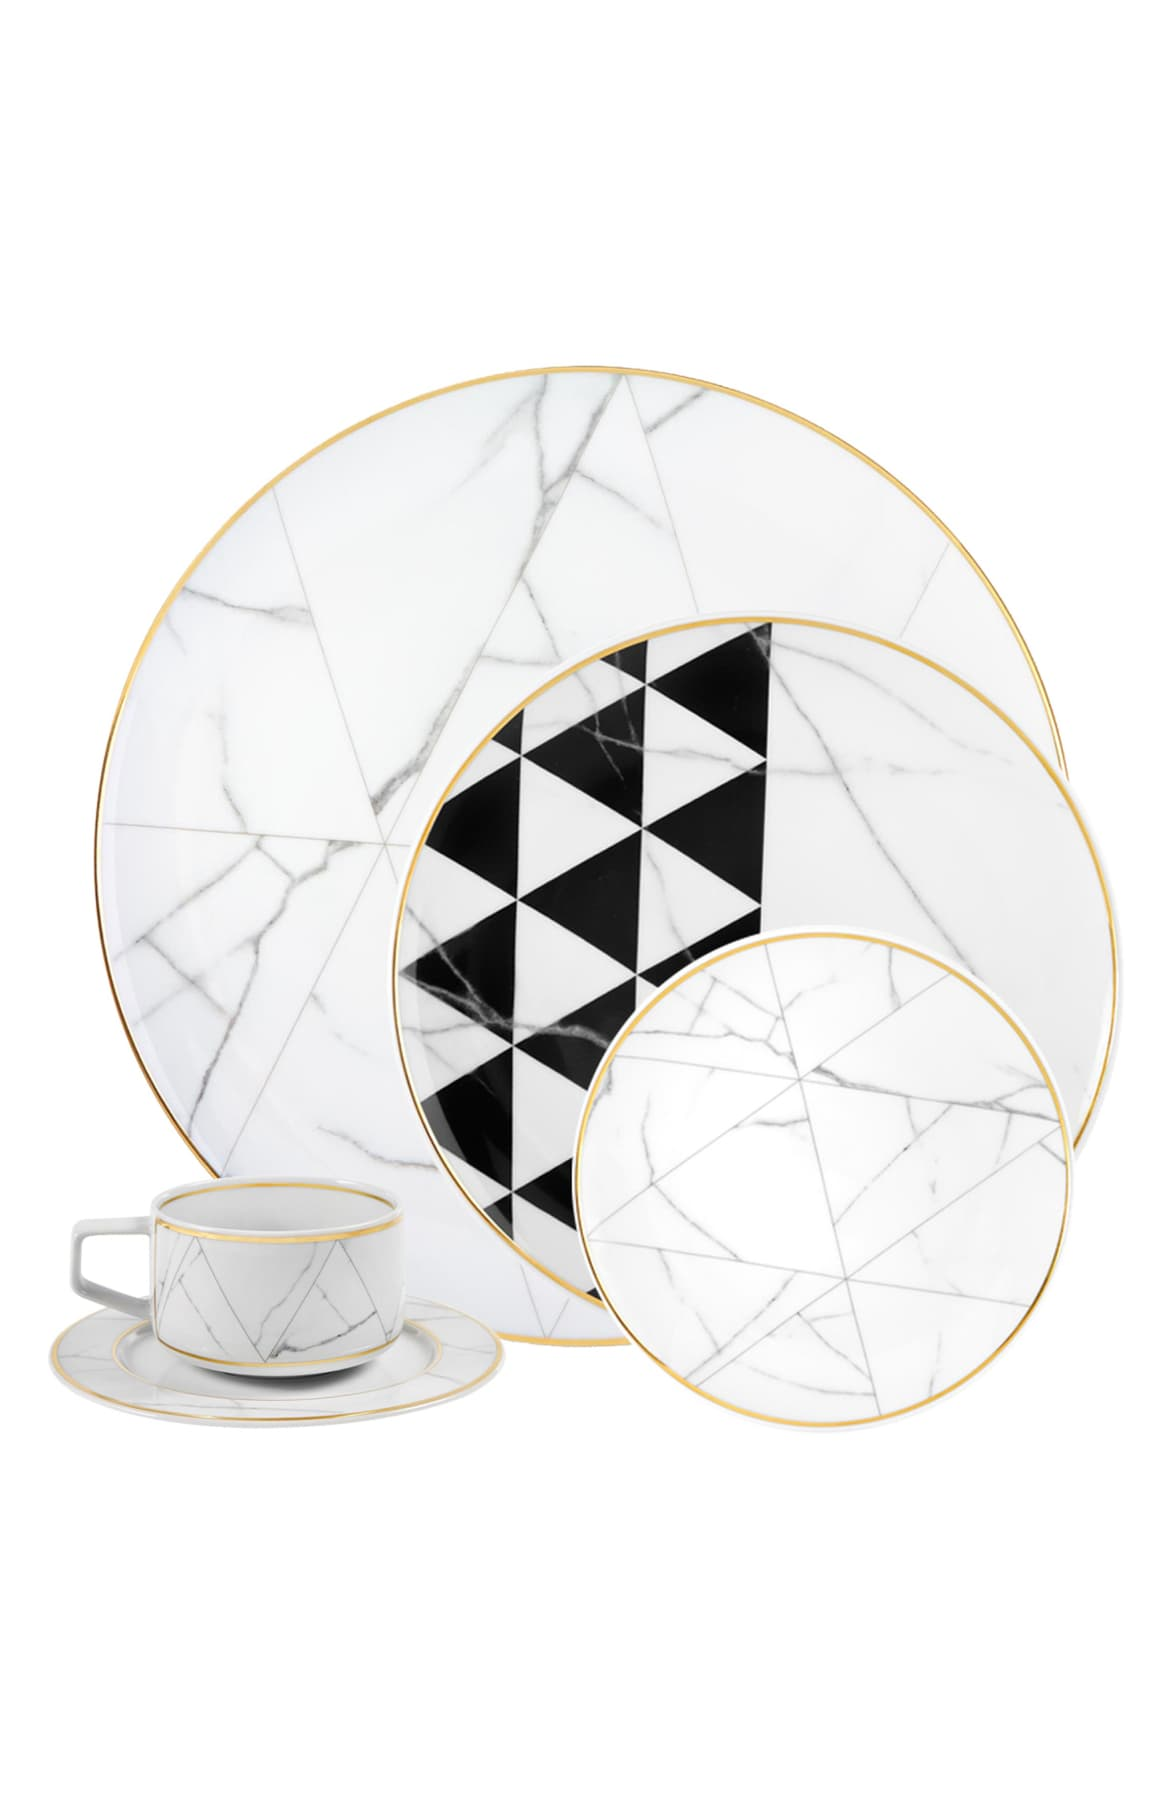 "<p>A stunning, contemporary place setting by French designer Coline Le Corre is inspired by the geometric marble of Carrara and rimmed in shining gold. $145.{&nbsp;}<a  href=""https://shop.nordstrom.com/s/oscar-de-la-renta-carrara-5-piece-place-setting/5075811/full?origin=coordinating-5075811-0-2-FTR-recbot-recently_viewed_snowplow_mvp&recs_placement=FTR&recs_strategy=recently_viewed_snowplow_mvp&recs_source=recbot&recs_page_type=category&recs_seed=0"" target=""_blank"" title=""https://shop.nordstrom.com/s/oscar-de-la-renta-carrara-5-piece-place-setting/5075811/full?origin=coordinating-5075811-0-2-FTR-recbot-recently_viewed_snowplow_mvp&recs_placement=FTR&recs_strategy=recently_viewed_snowplow_mvp&recs_source=recbot&recs_page_type=category&recs_seed=0"">Shop it{&nbsp;}</a>{&nbsp;}(Image: Nordstrom){&nbsp;}</p>"